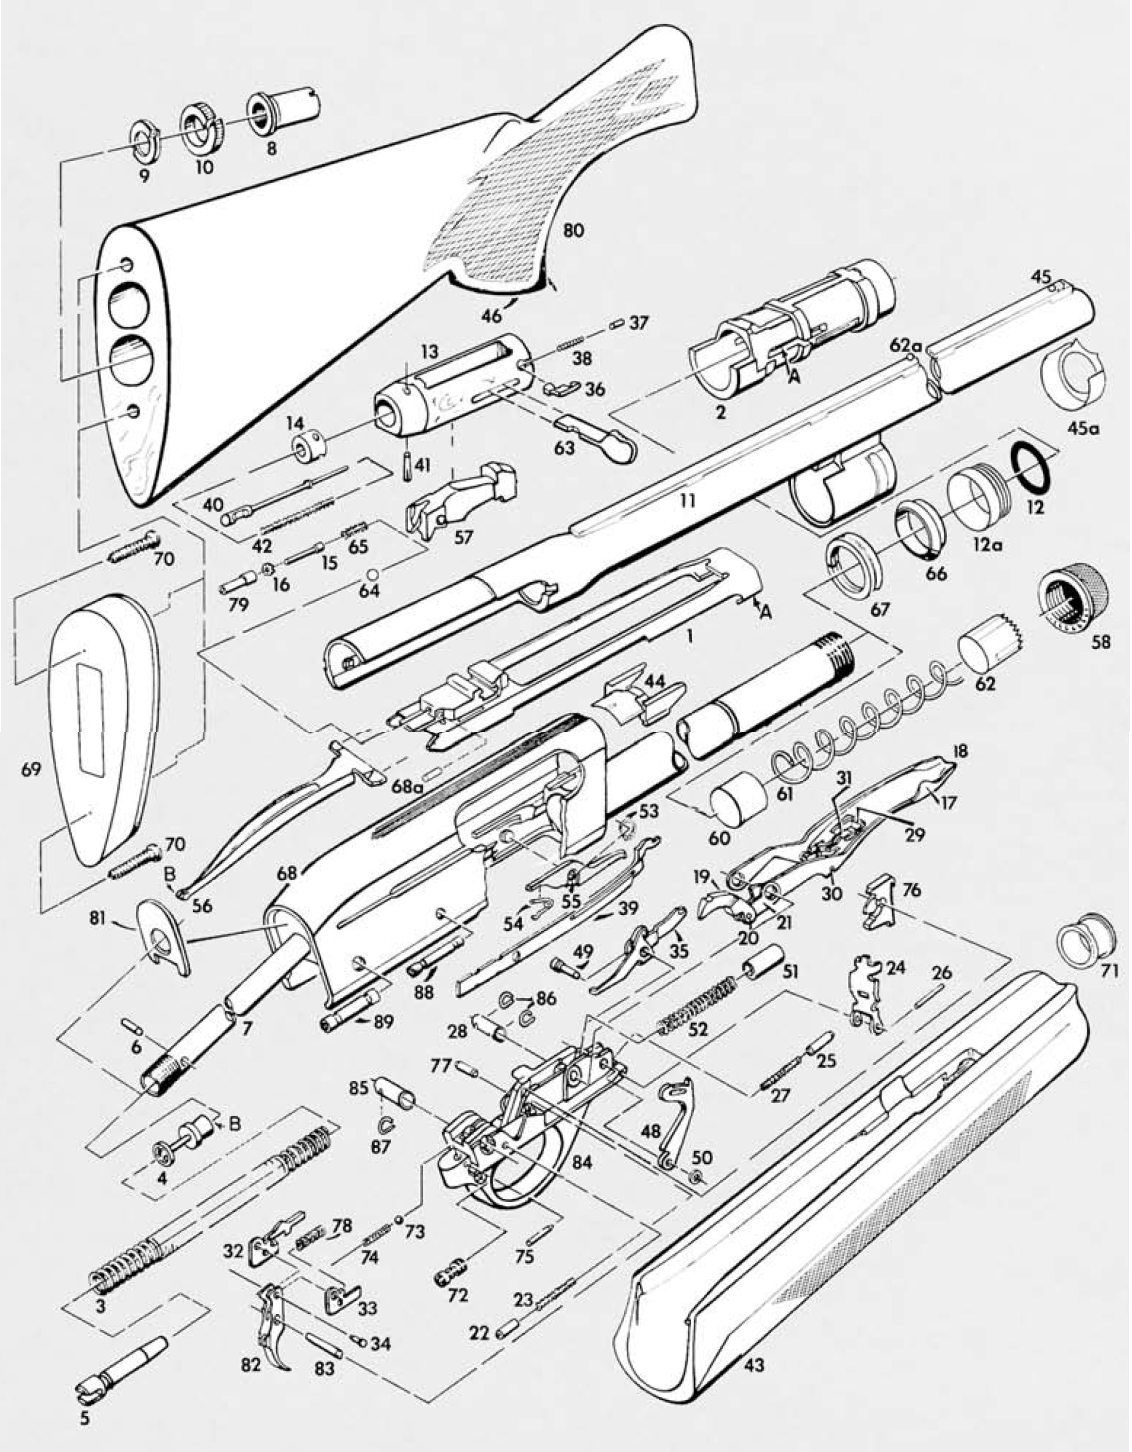 Remington Model 98 Diagram